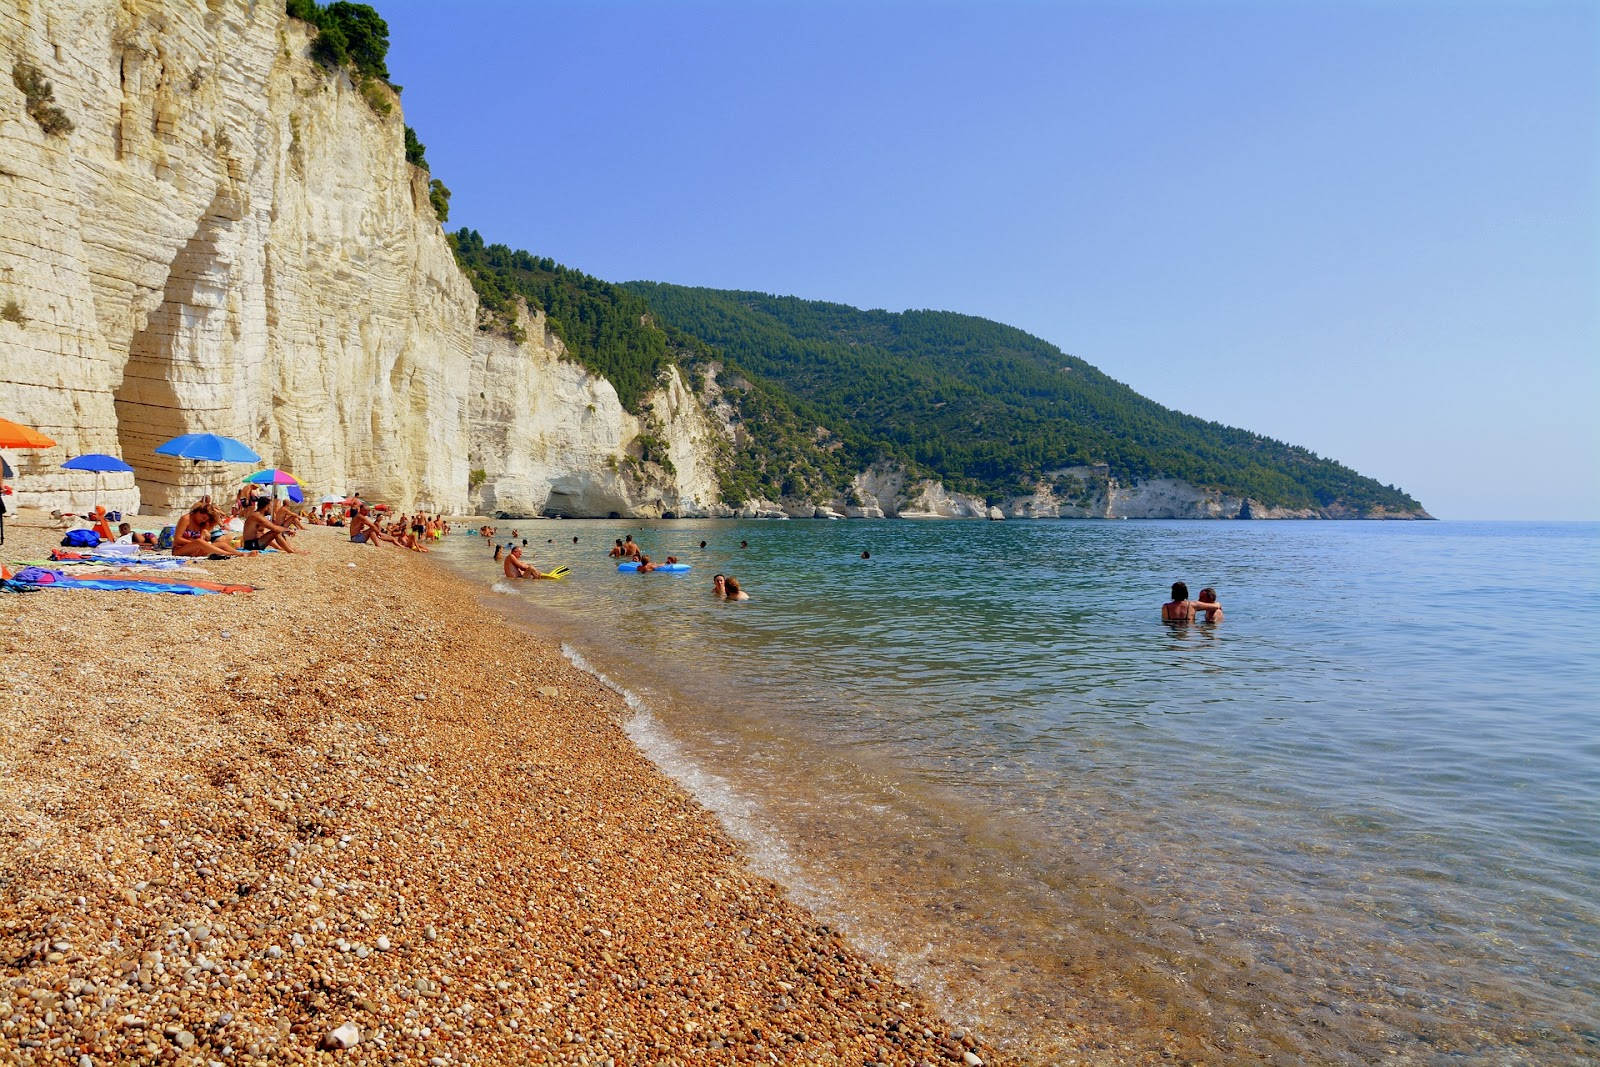 gargano pebble beach crystal clear sea white sandstone cliffs tourists swimming and sunbathing forest in background sunny day south of italy